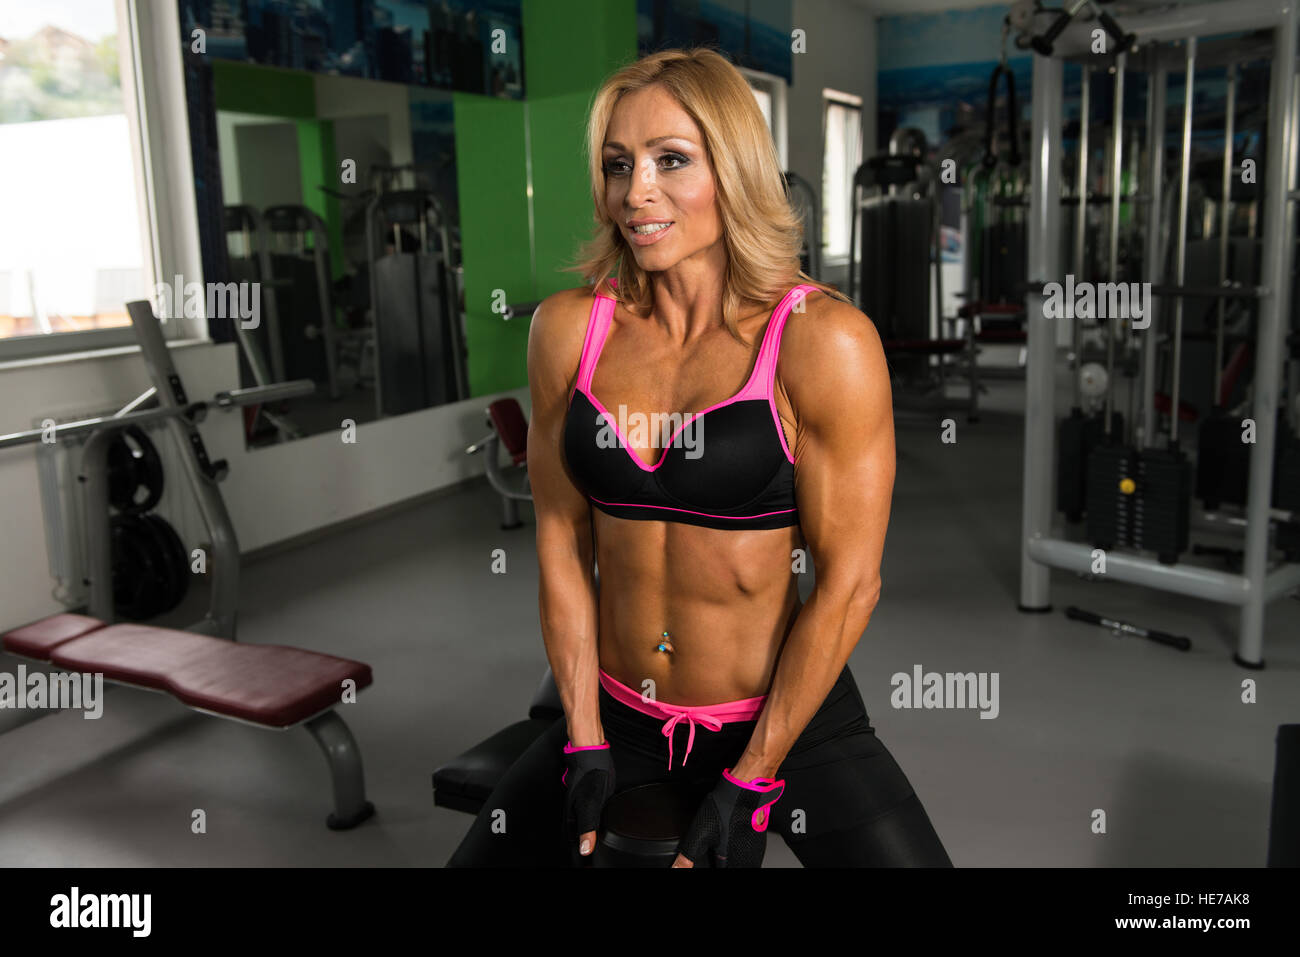 Old Mature Ass mature fitness woman working out ass in fitness center stock